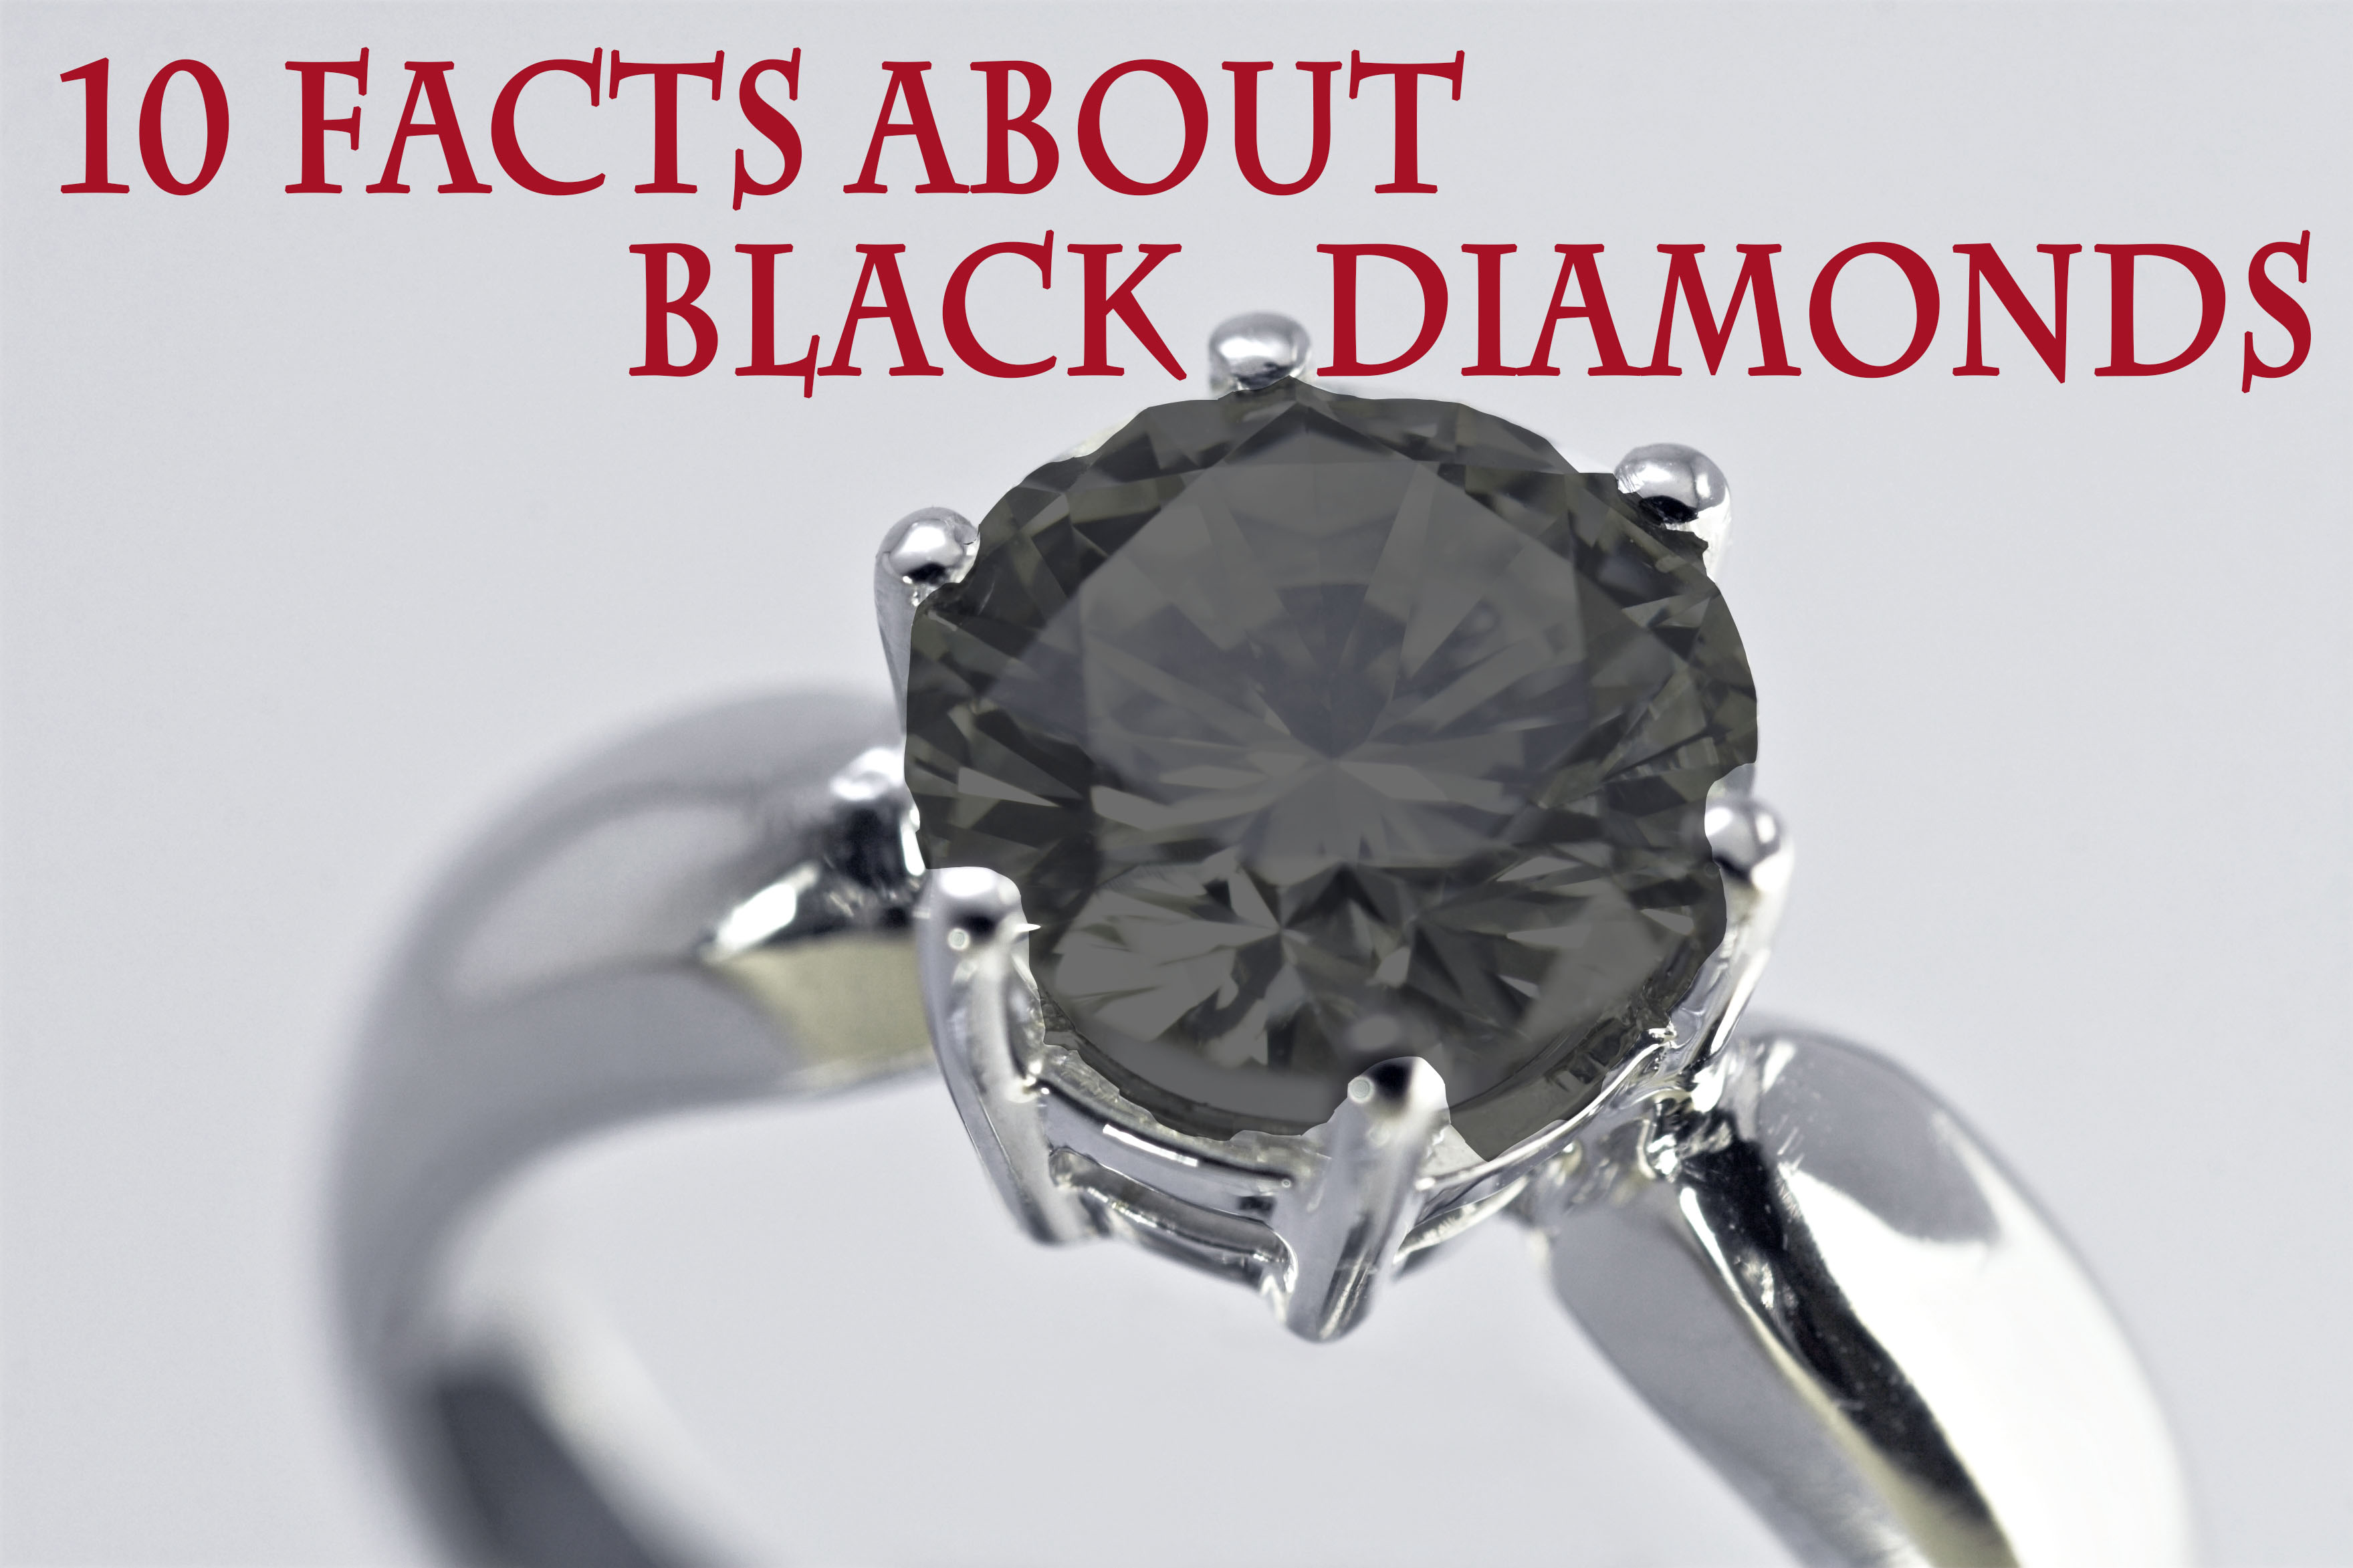 black_diamonds_facts.jpg